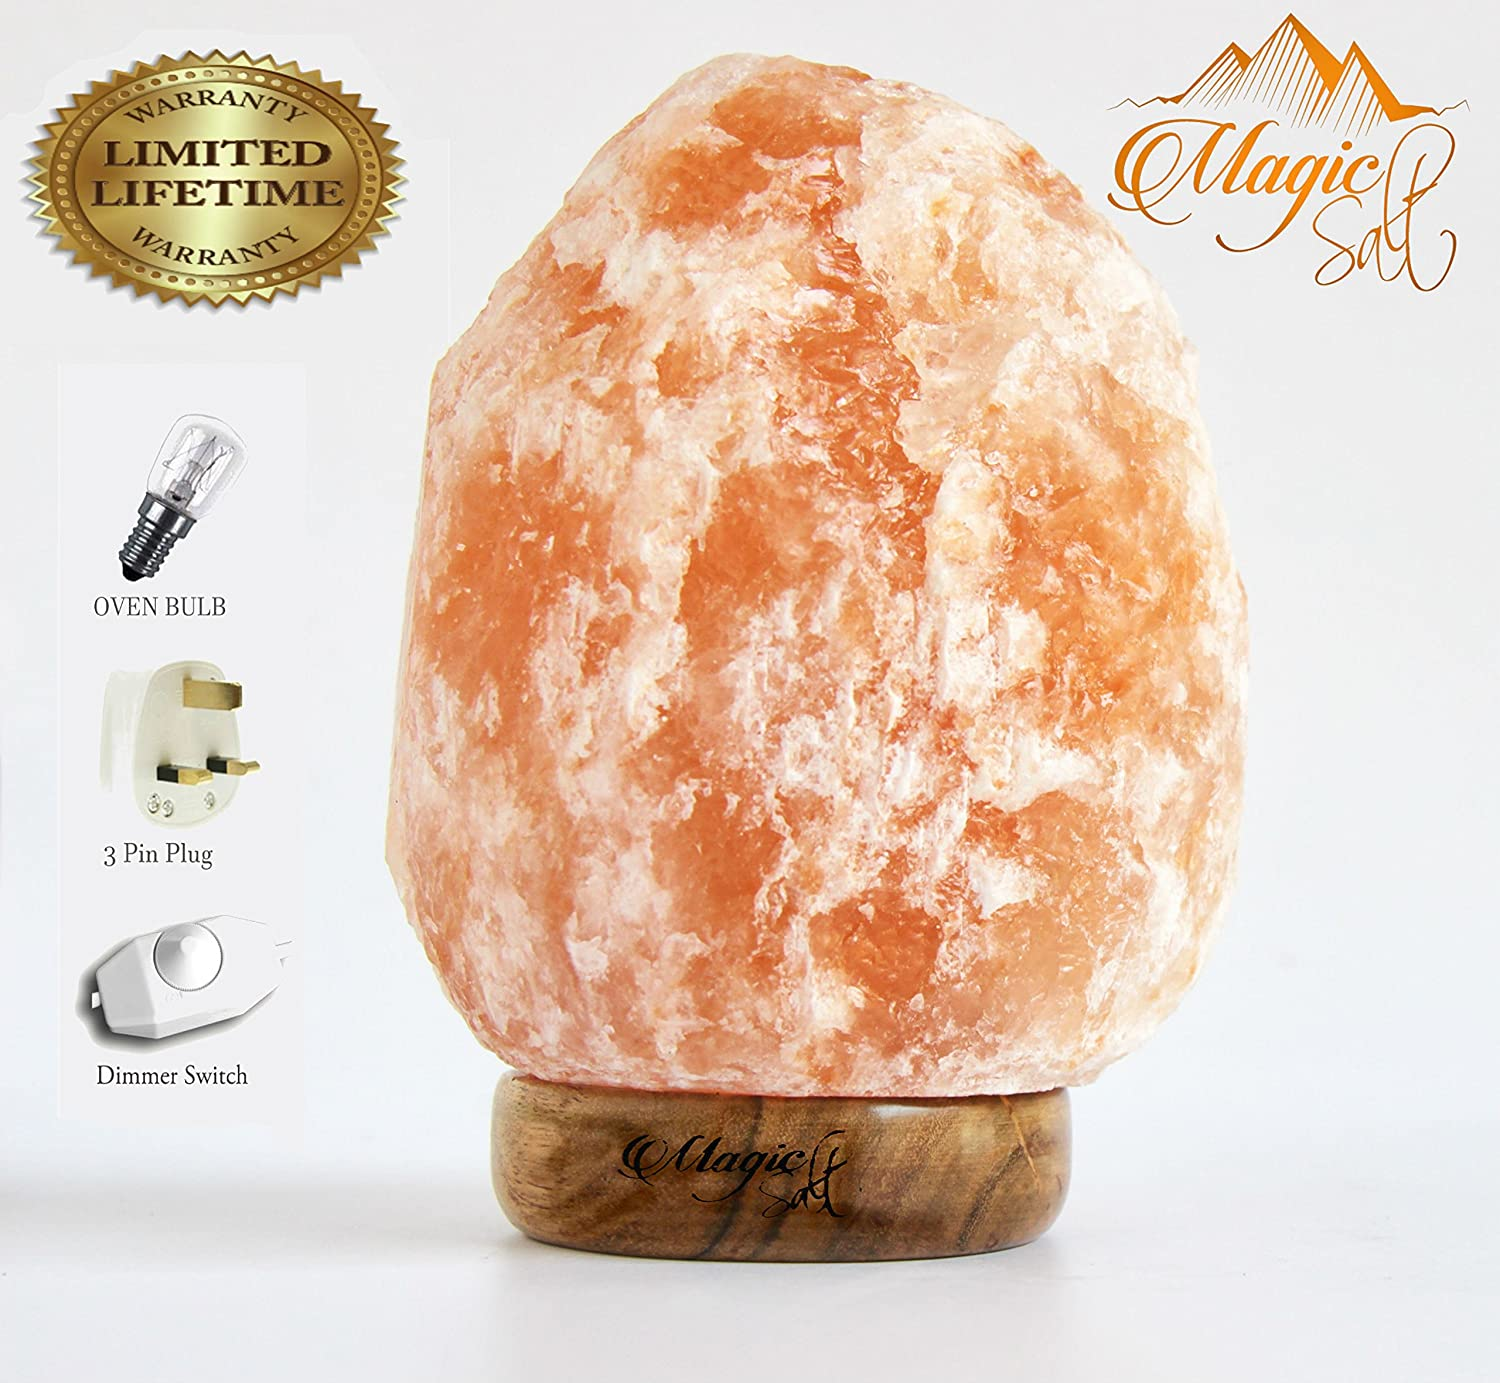 2-3 KG NATURAL PINK HIMALAYAN CRYSTAL ROCK SALT LAMP WITH DIMMER SWITCH AND BRITISH STANDARD ELECTRIC PLUG. 100% PREMIUM AND FINE QUALITY By MAGIC SALTÂ Himalayan Salt Products Ltd